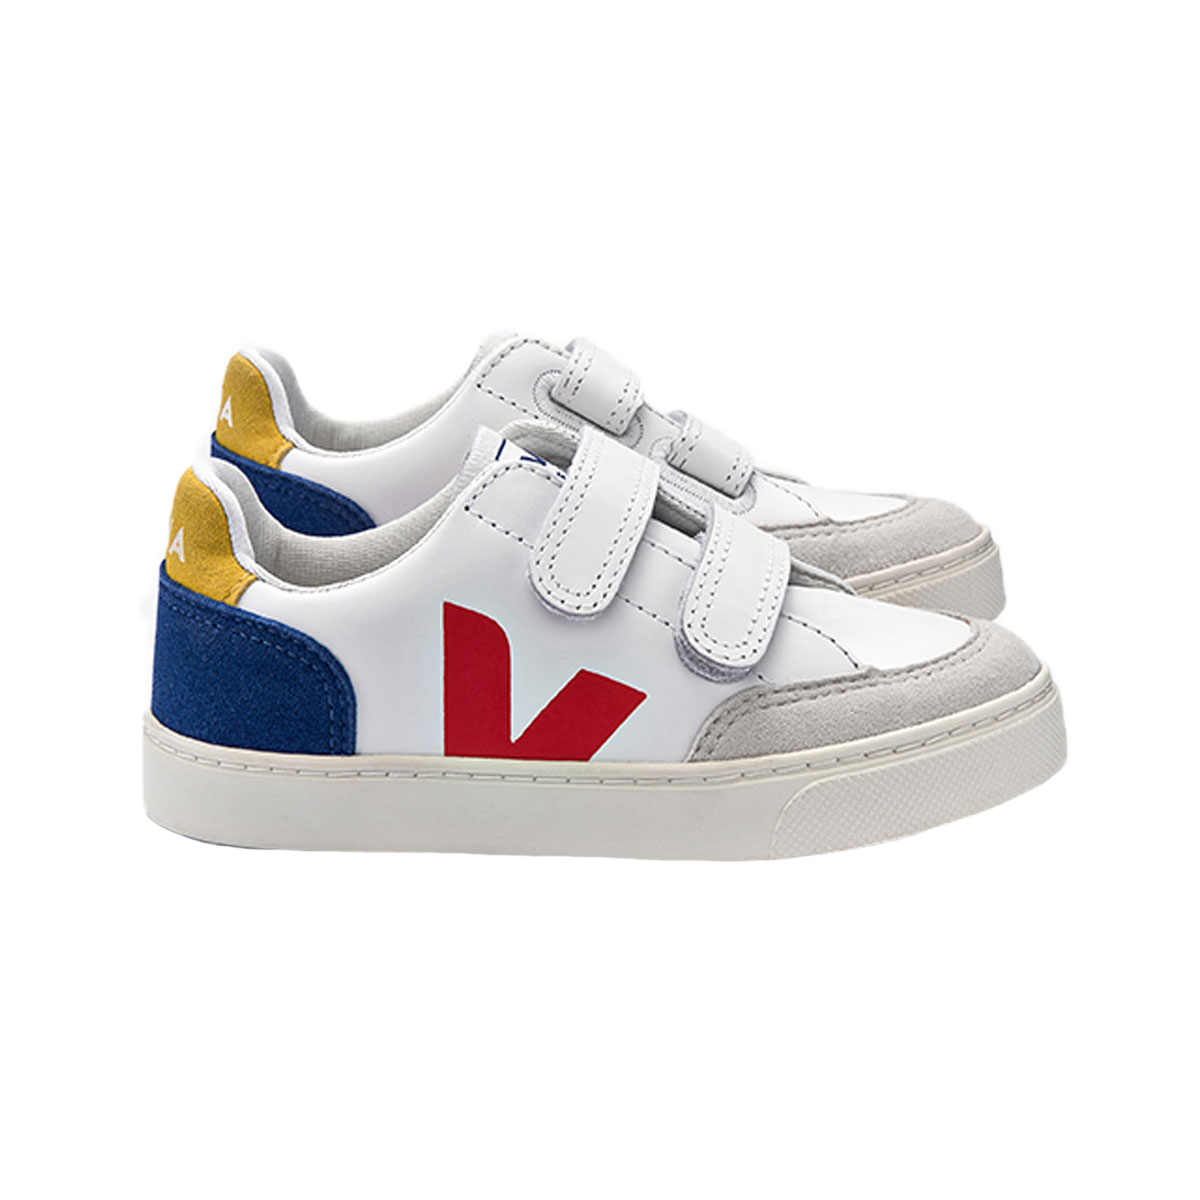 Veja V12 Small Velcro Leather Sneaker in Indigo